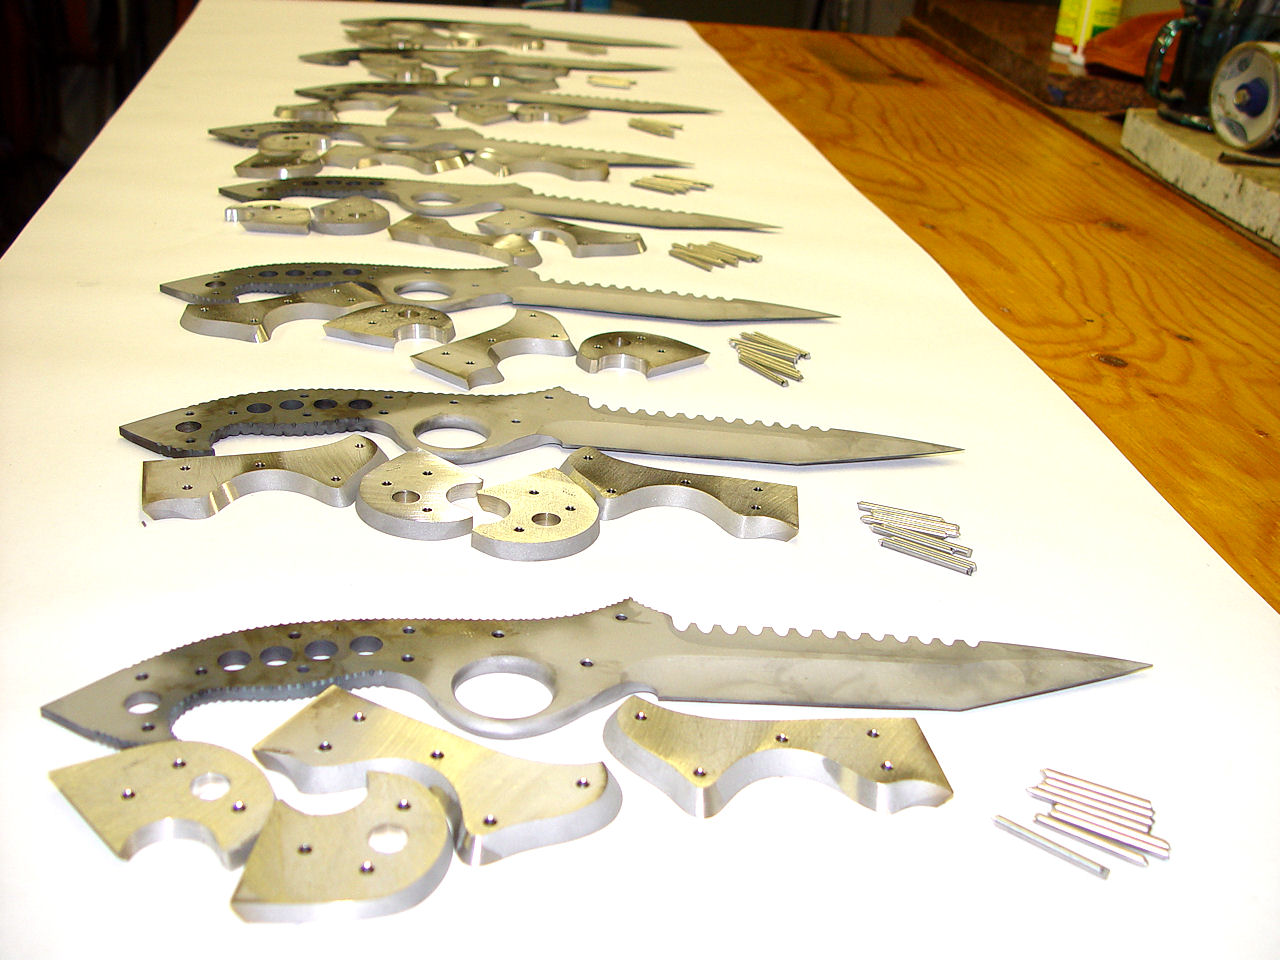 Group of Counterterrorism knives handmade by Jay Fisher in his studio in Clovis, New Mexico, USA